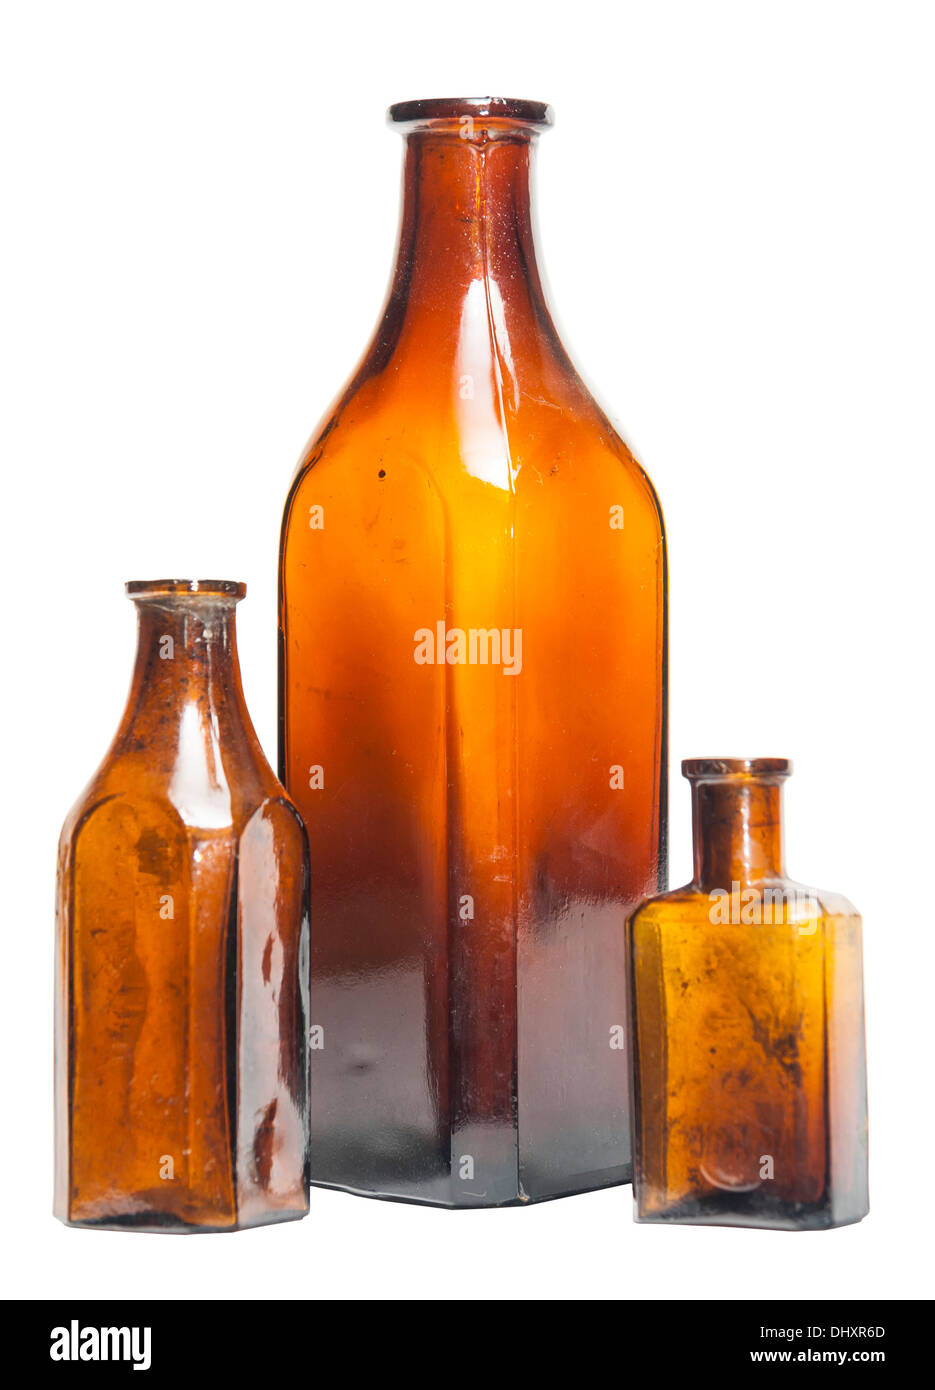 Isolated old style bottles in different shape and colors - Stock Image